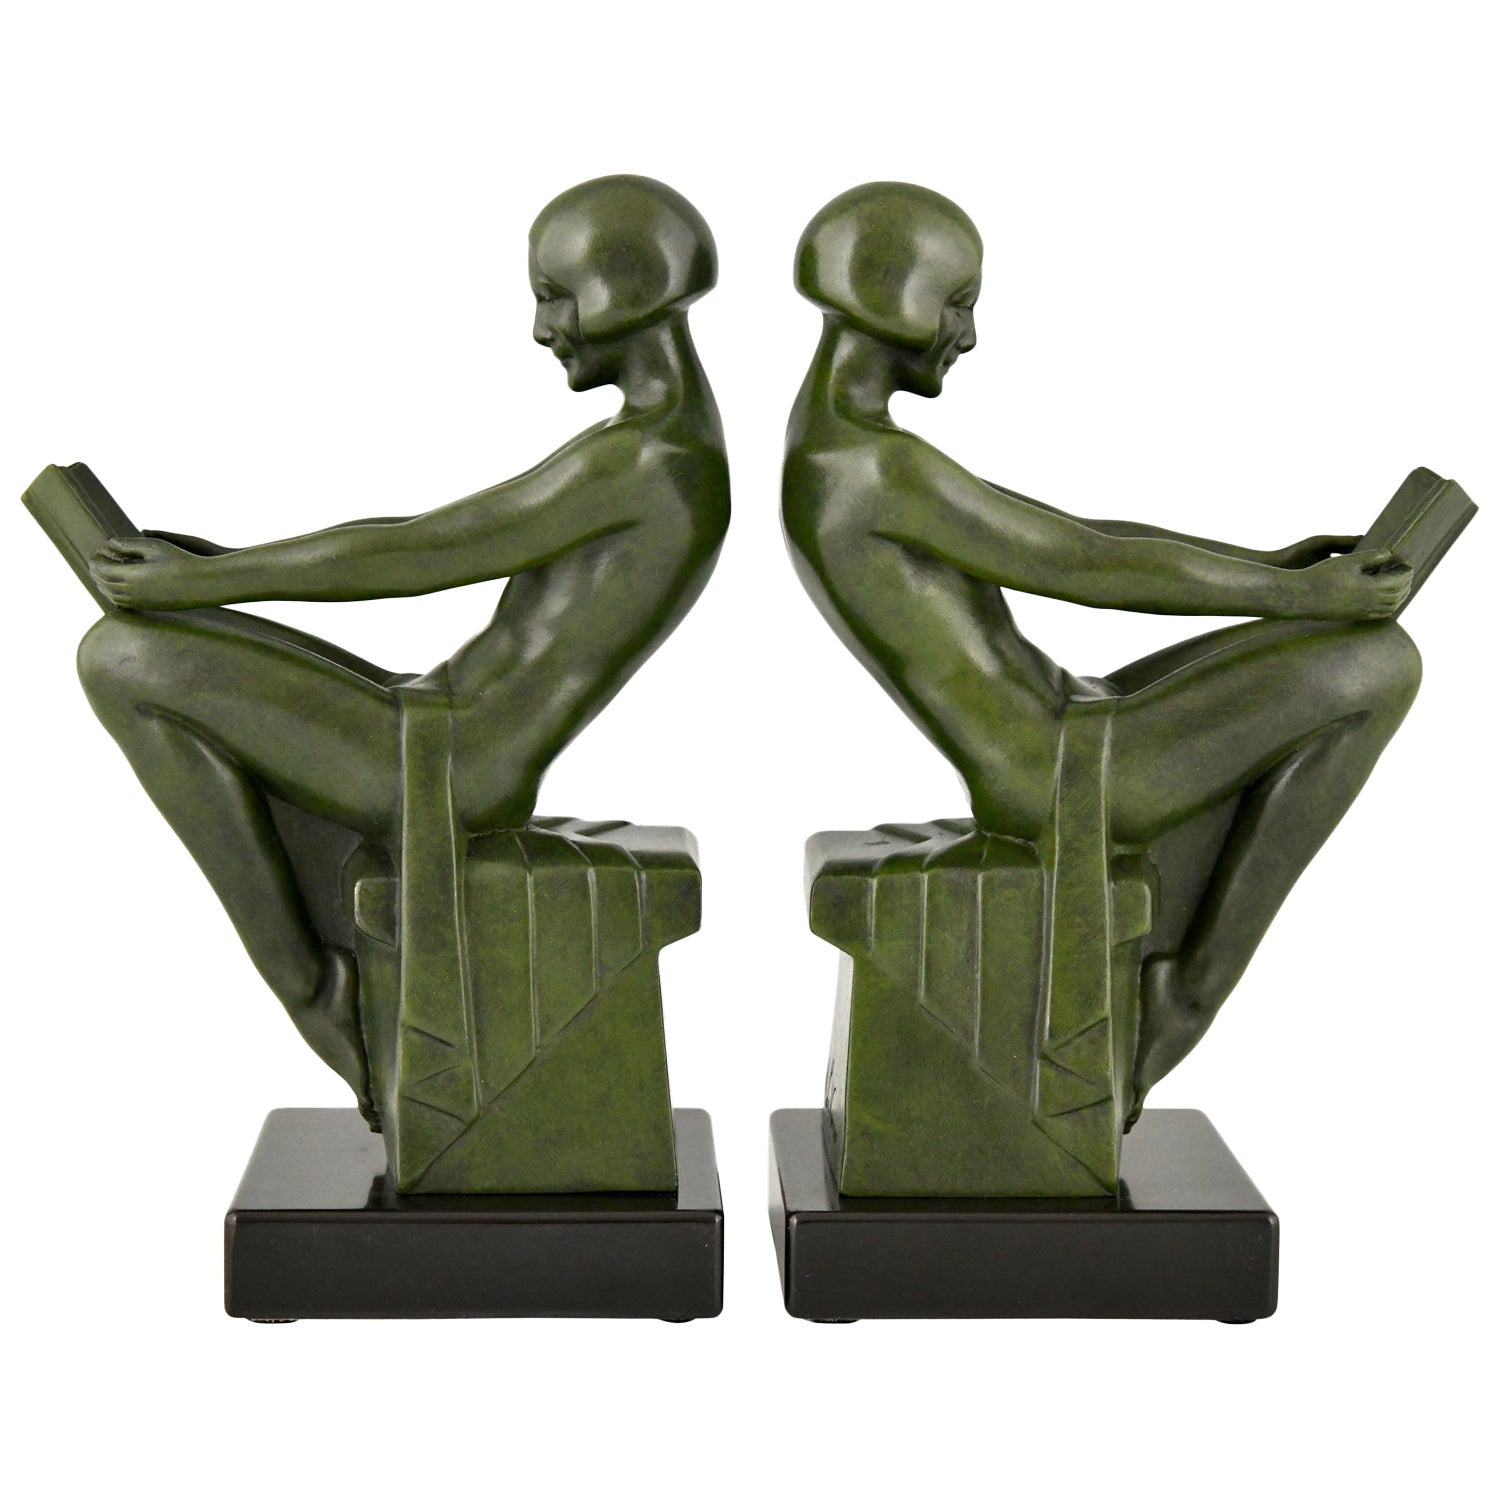 Art Deco Bookends with Reading Nudes Max Le Verrier, France, 1930